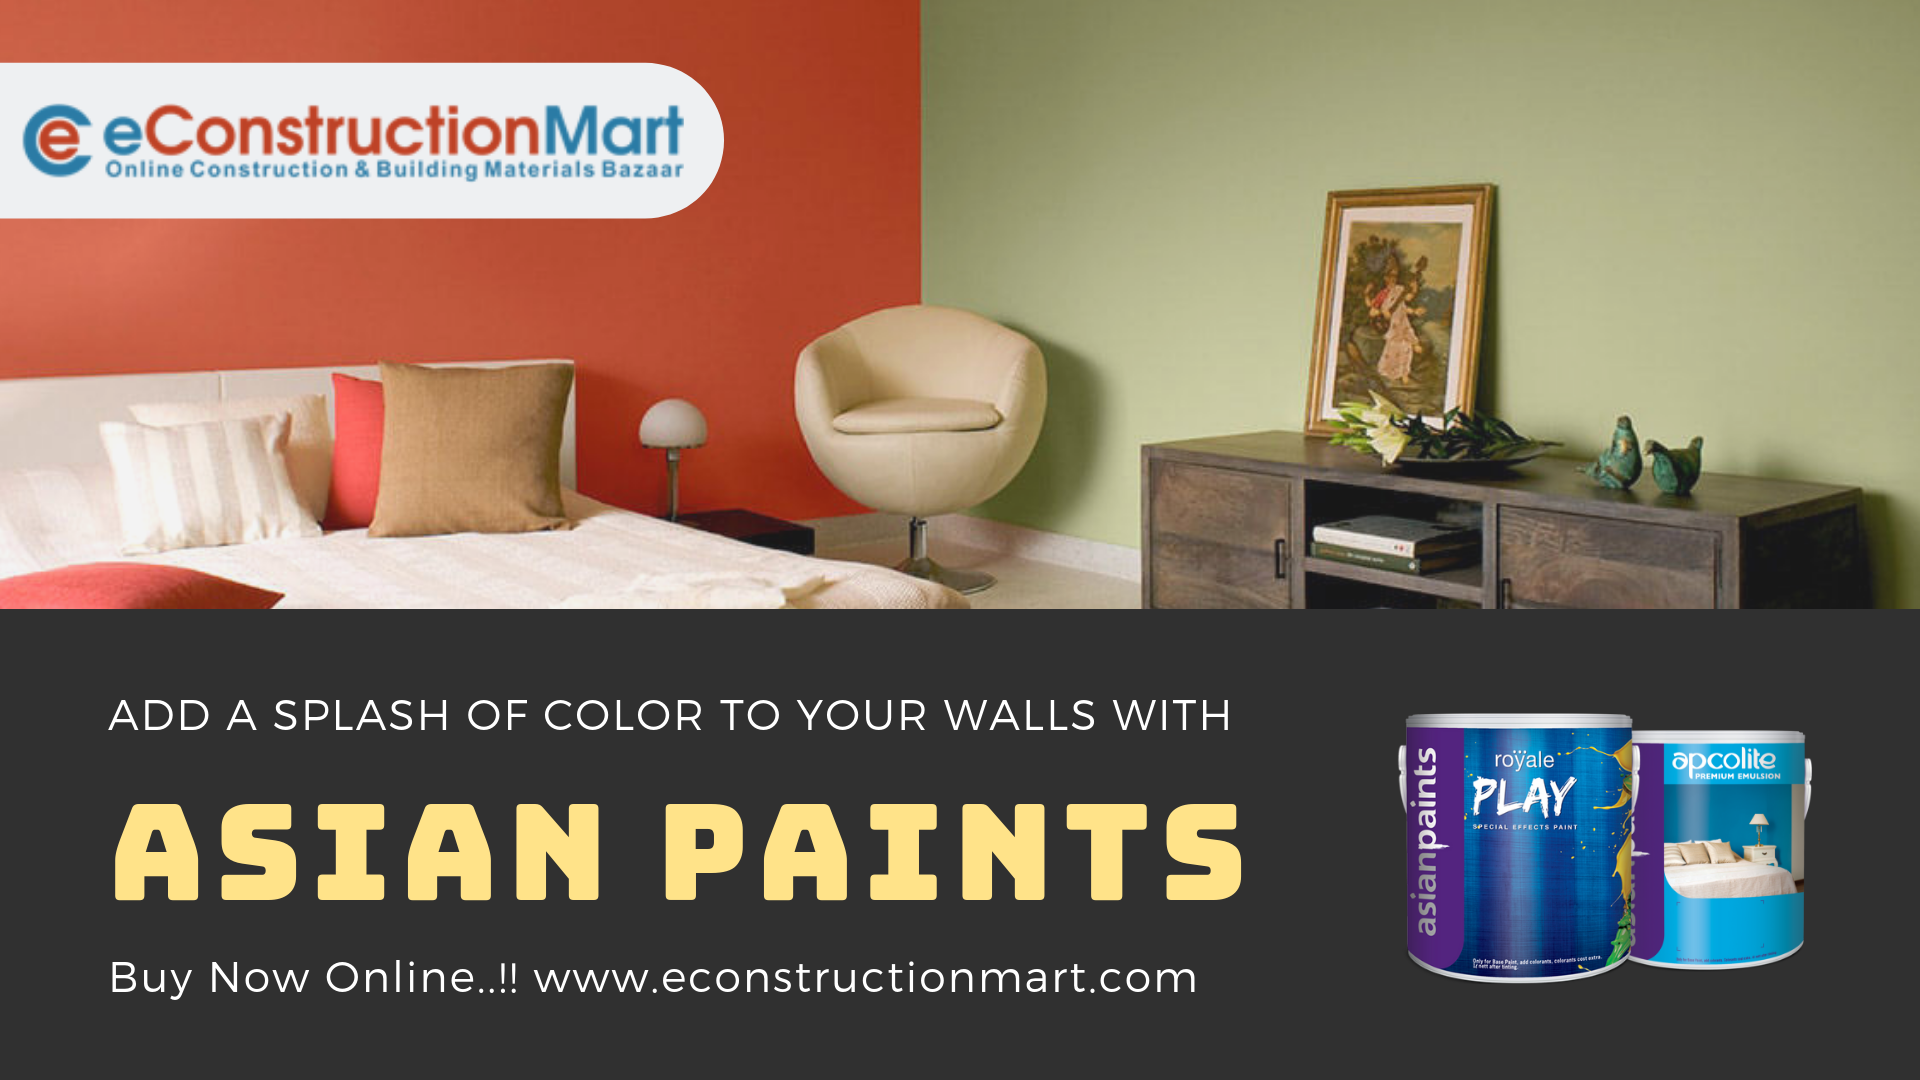 Add Color And Happiness To Your Living Spaces With Asian Paints Https Bit Ly 2xcwsrk Asianpaints Wallpaints Wallpaint Asian Paints Paint Prices Painting